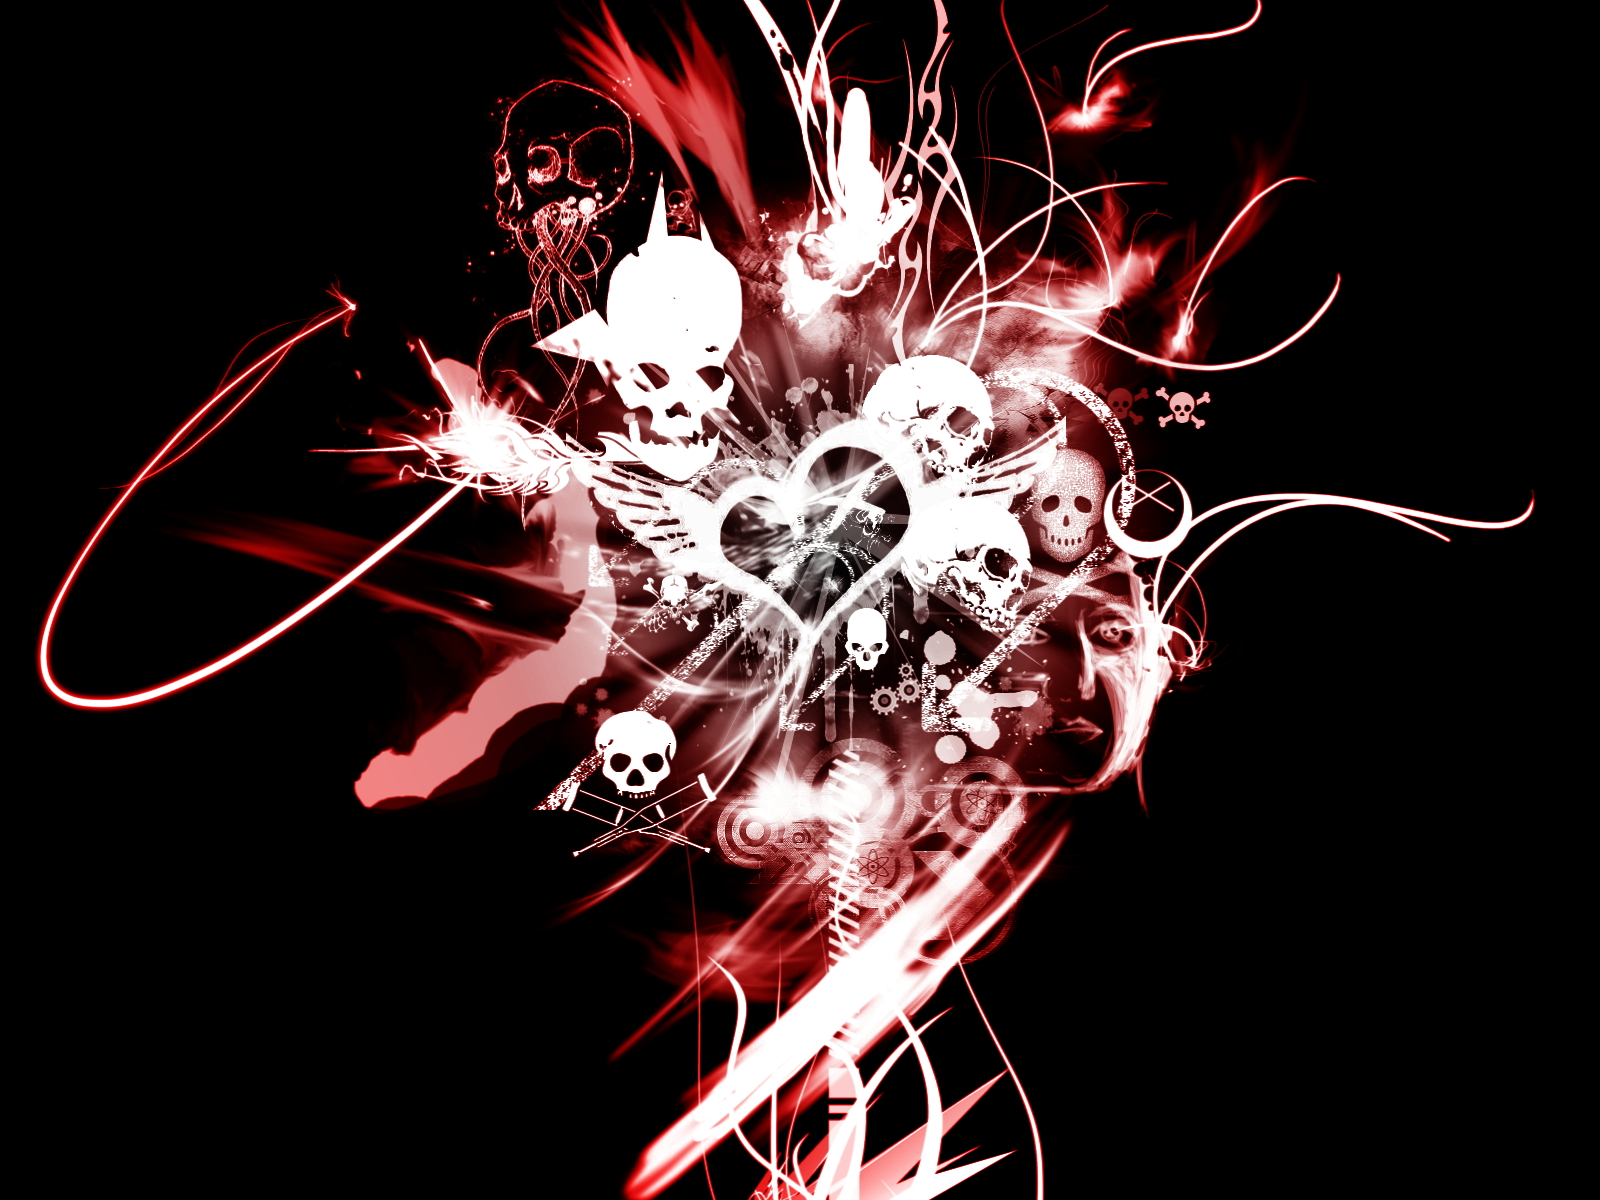 For Love and Death - Wallpaper by V1N3 on DeviantArt